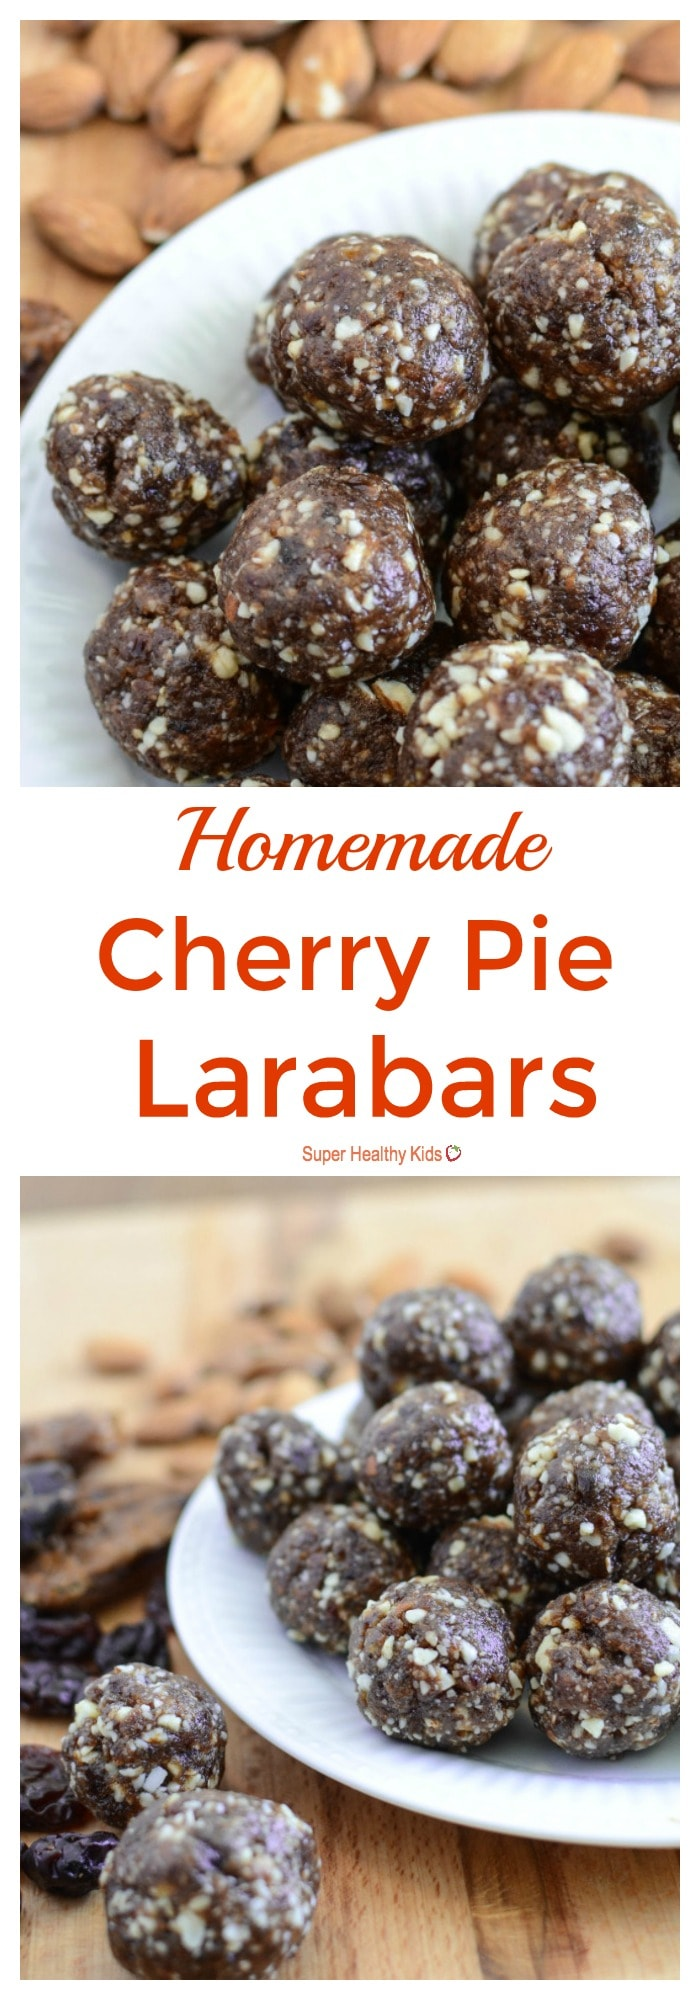 FOOD - Homemade Cherry Pie Larabars. A healthy cherry pie snack that is portable and easy to whip up! http://www.superhealthykids.com/homemade-cherry-pie-larabars-recipe/